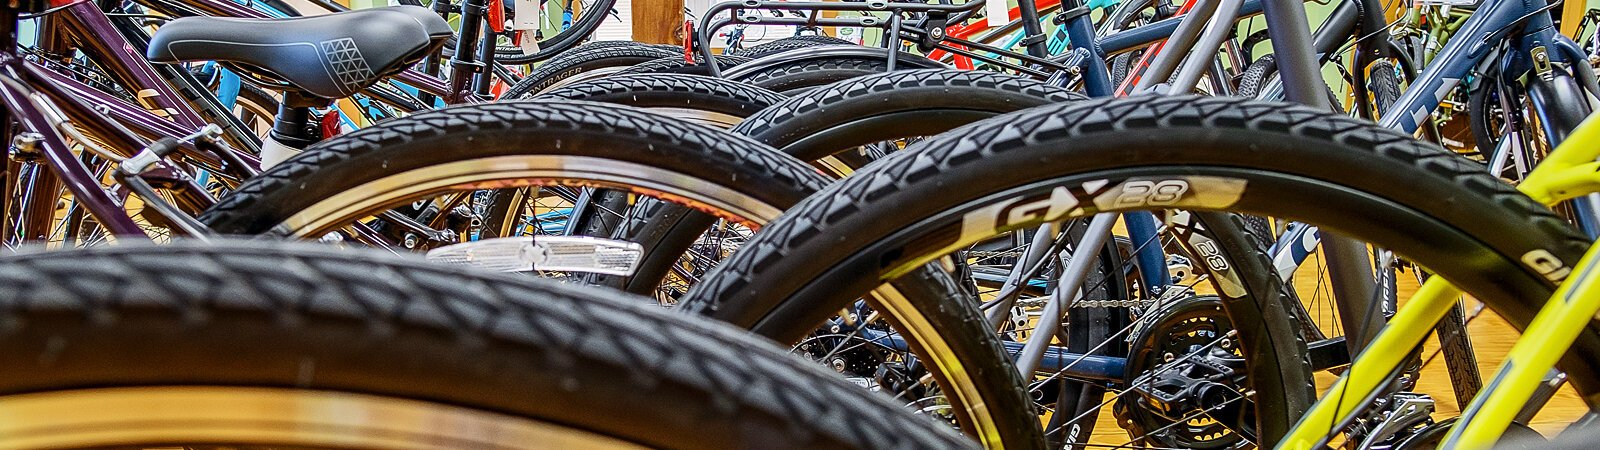 Trailhouse Village Bicycles in Winona Lake offers bicycles, accessories, riding apparel, components, and bike care.